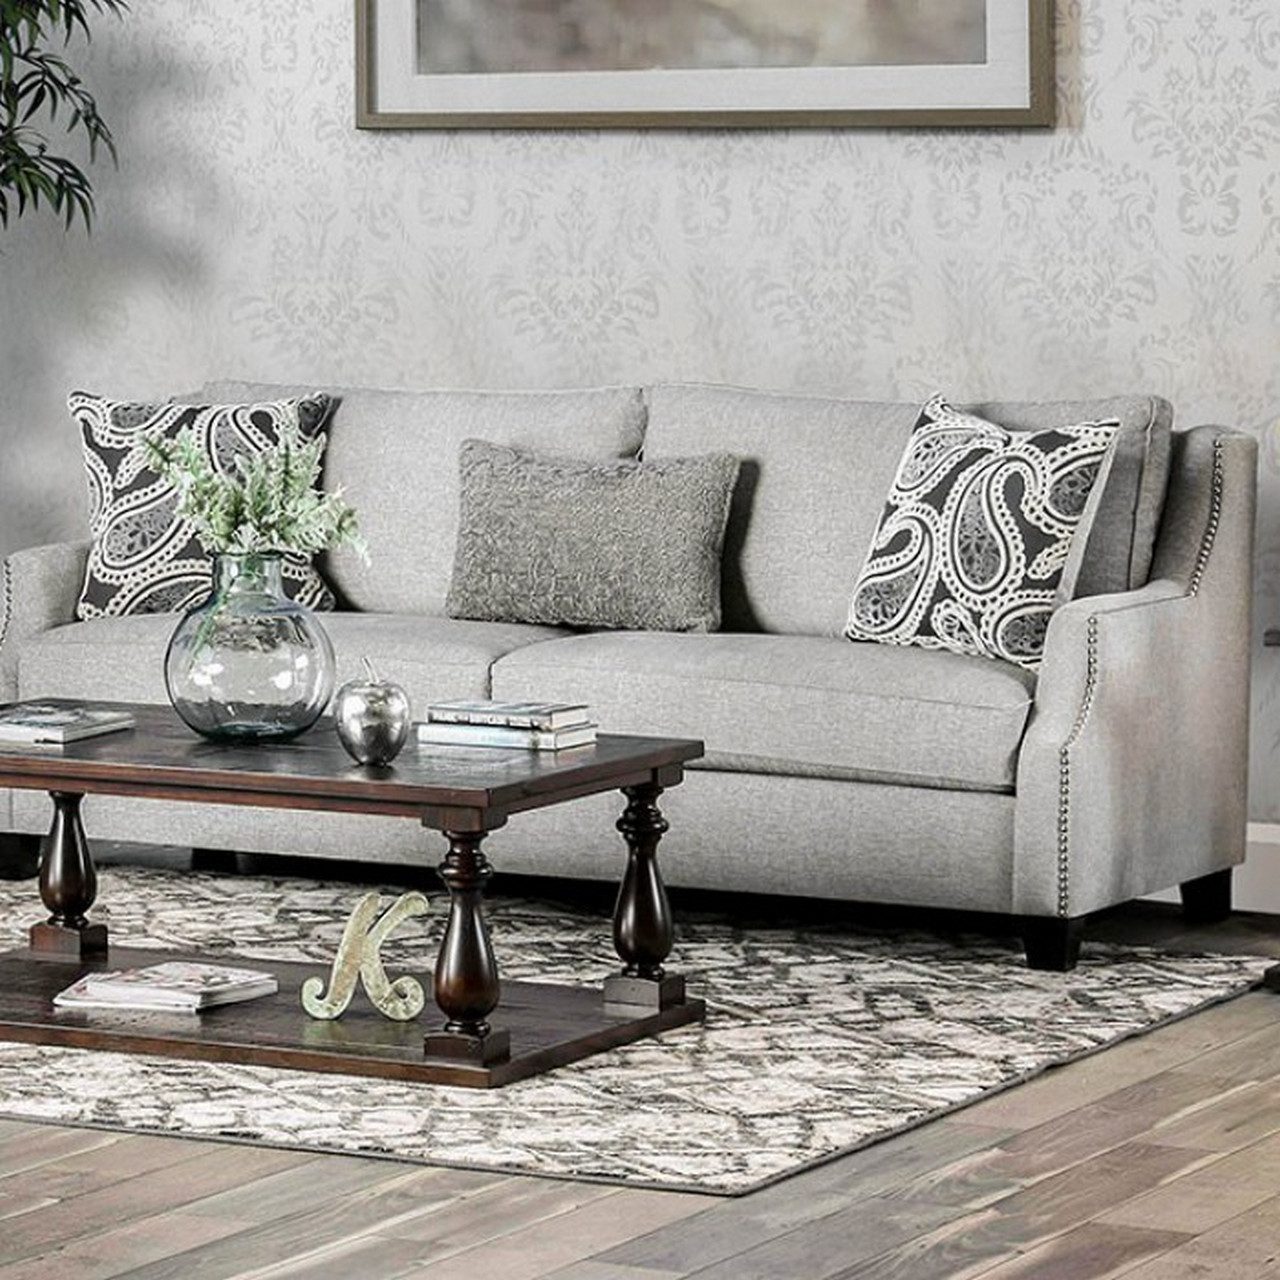 grey sofa with silver nailheads sofab chantal contemporary fabric sloped arms